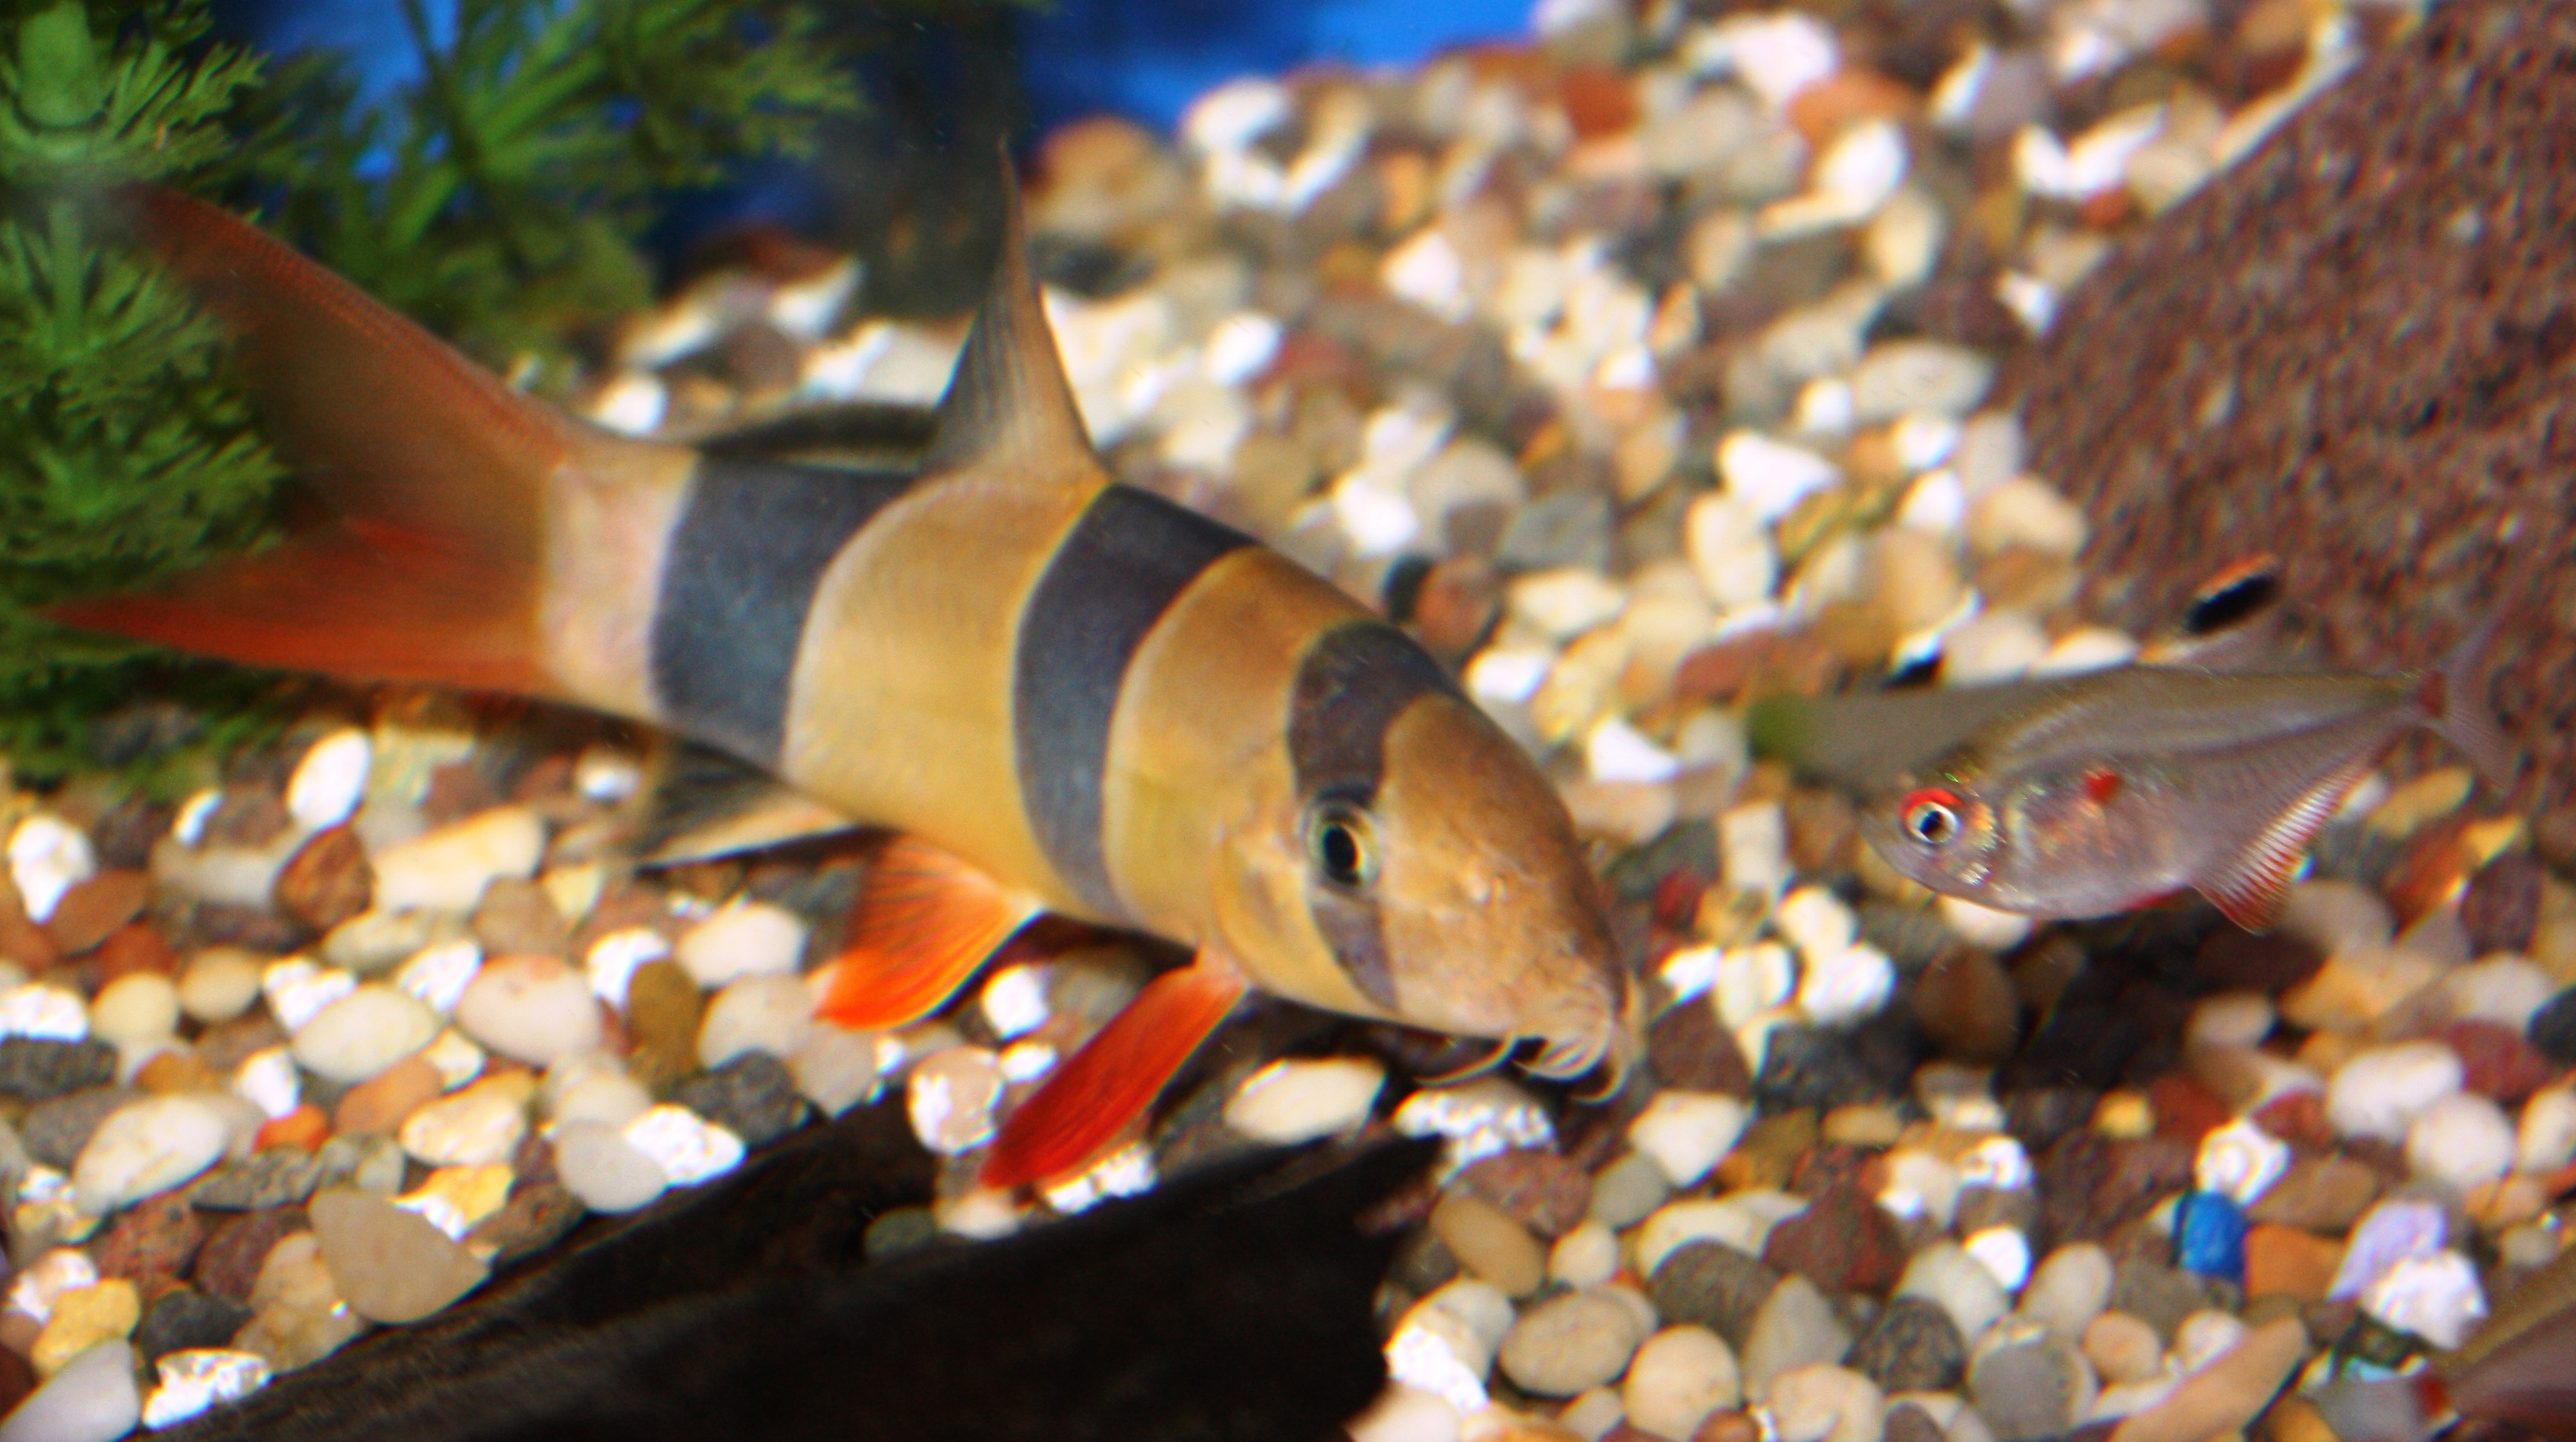 Freshwater fish to eat - Freshwater Fish For Sale Nj Clown Loaches